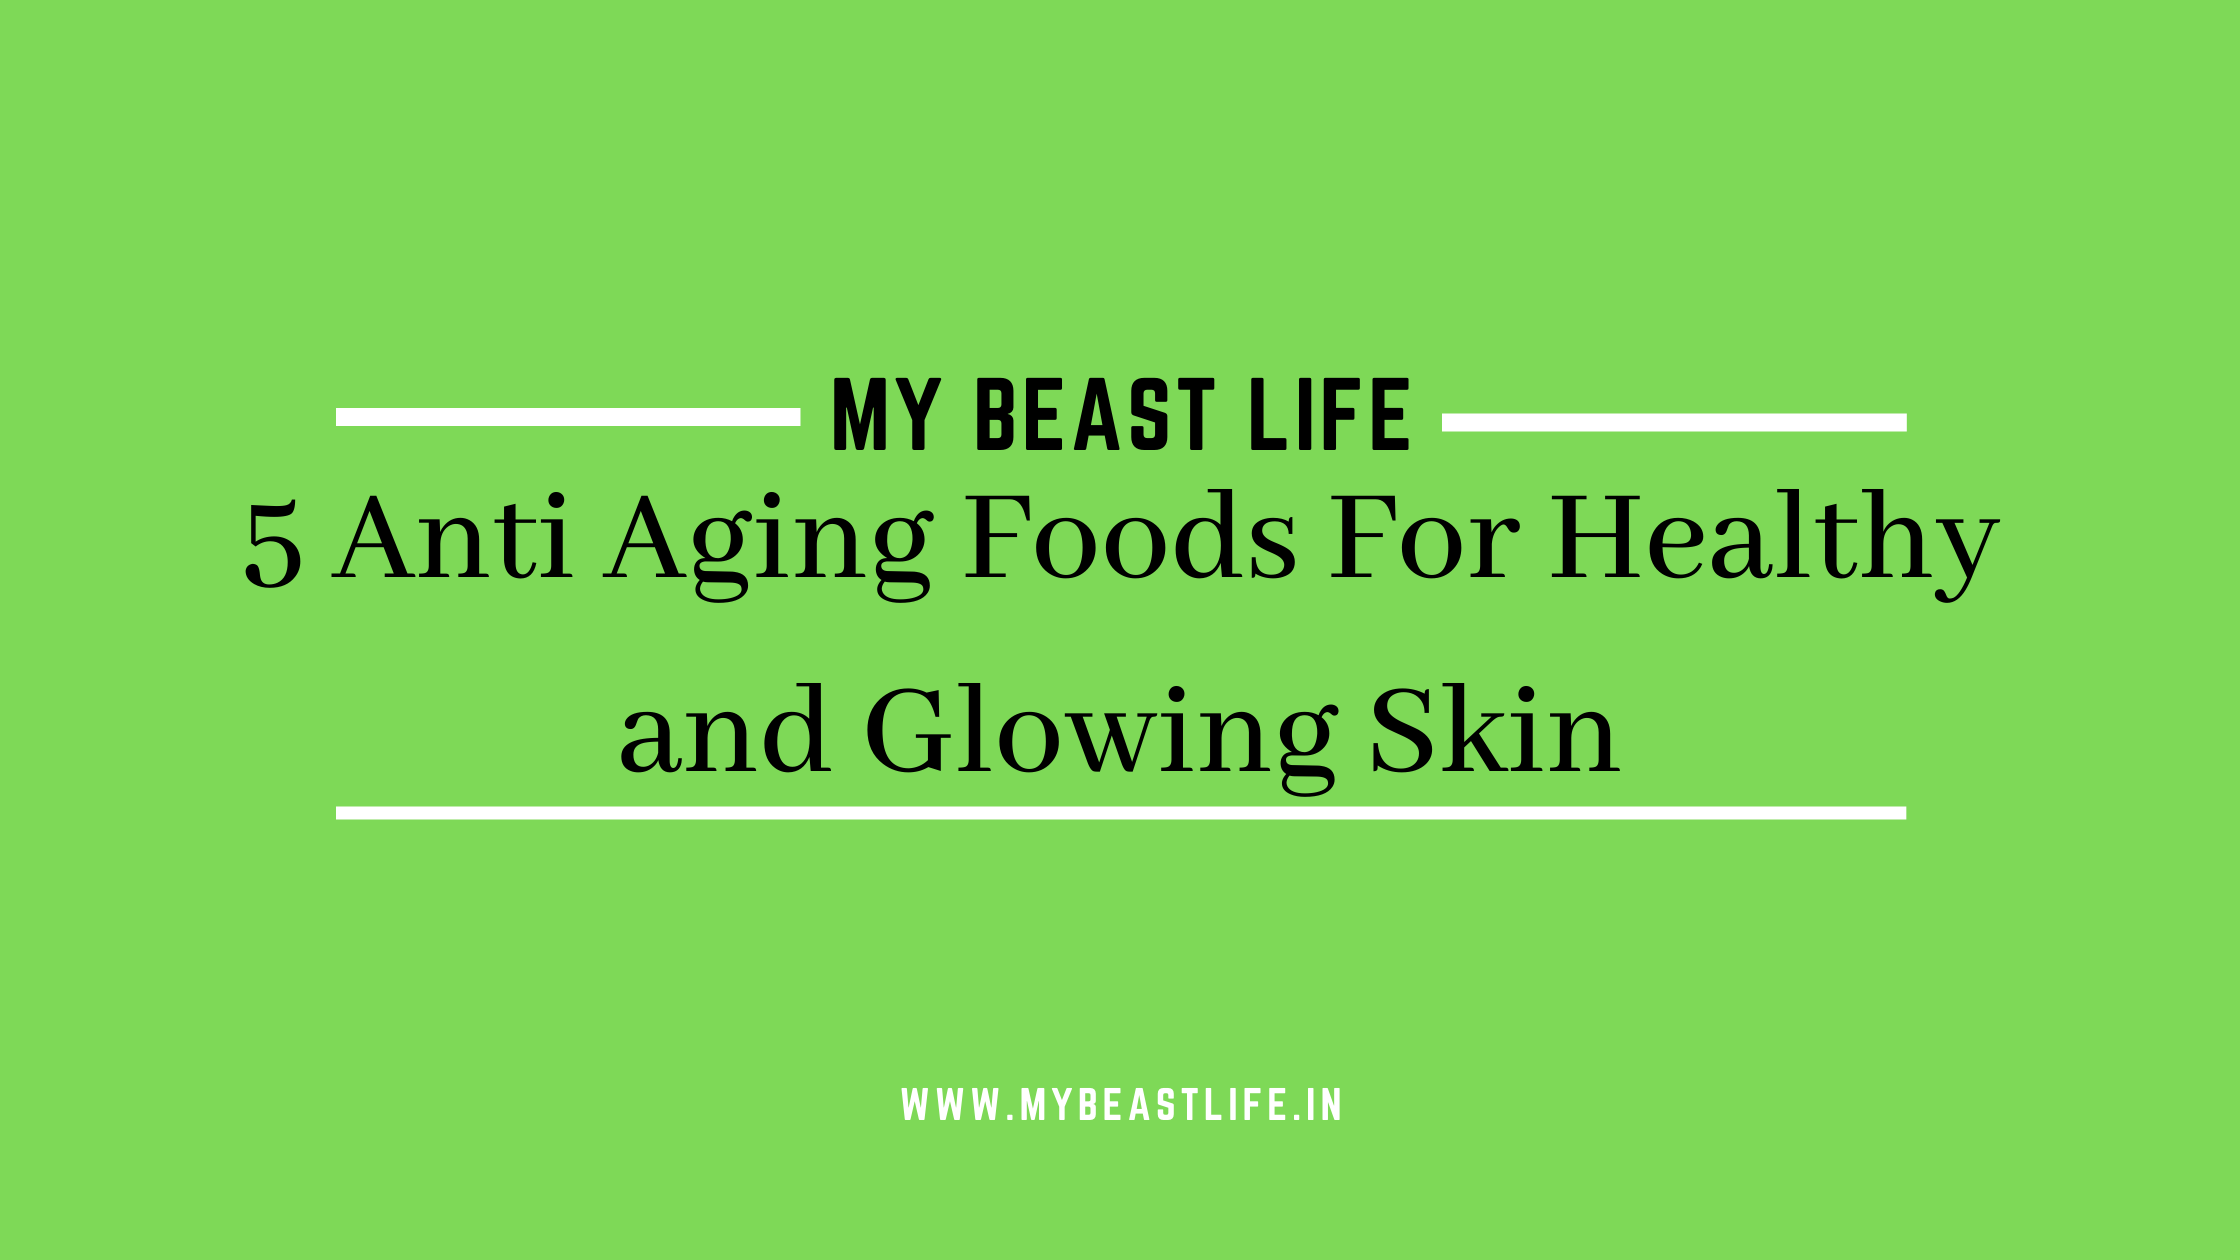 5 Anti Aging Foods For Healthy and Glowing Skin